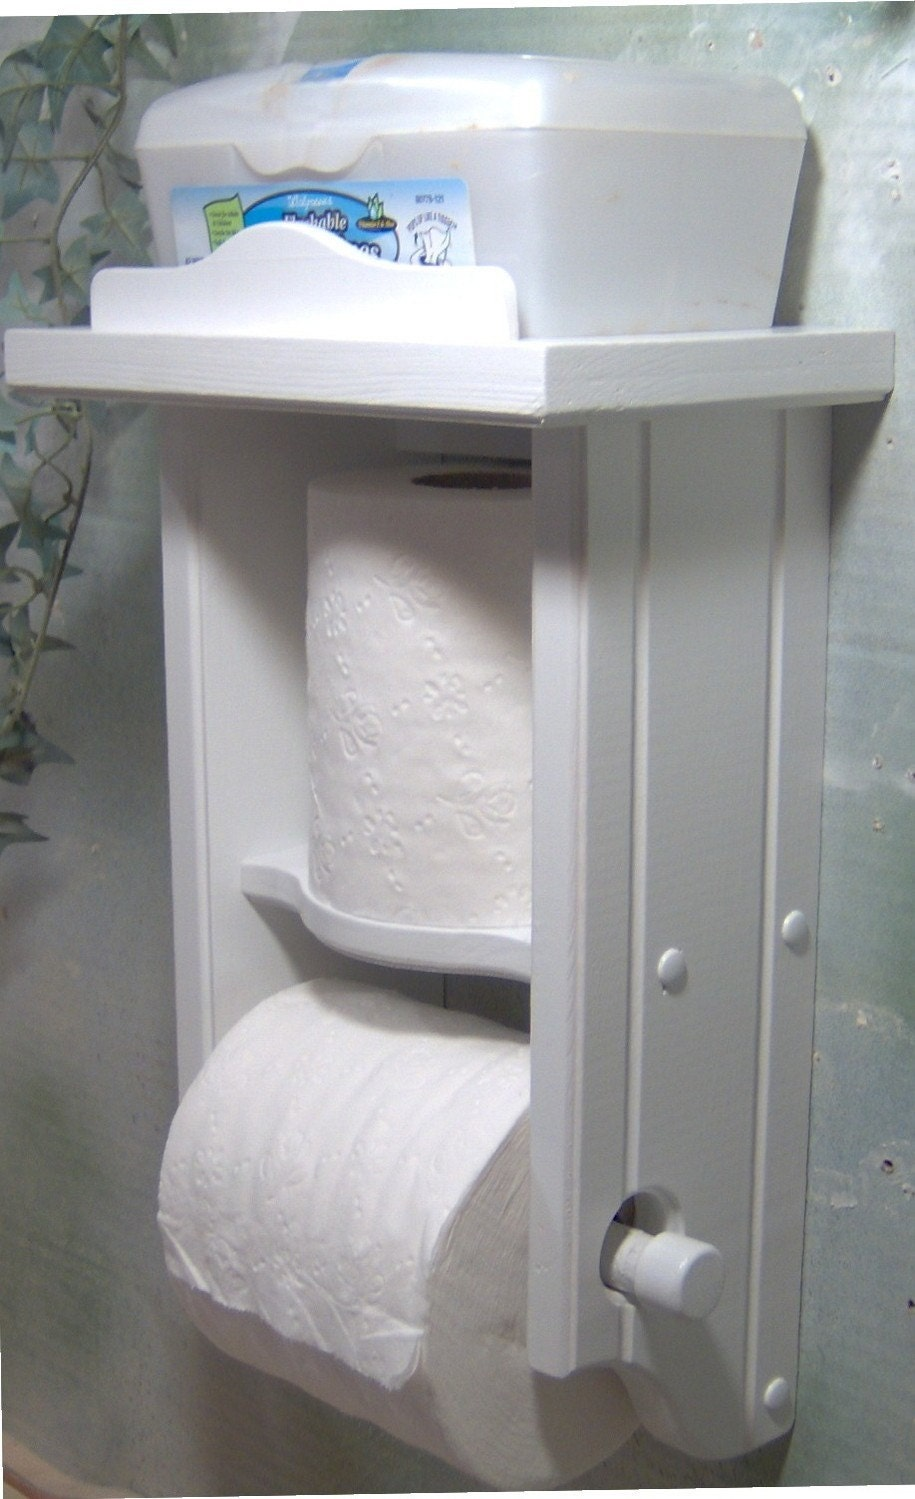 White Toilet Paper Holder Extra Roll With Shelf By Jahnjed